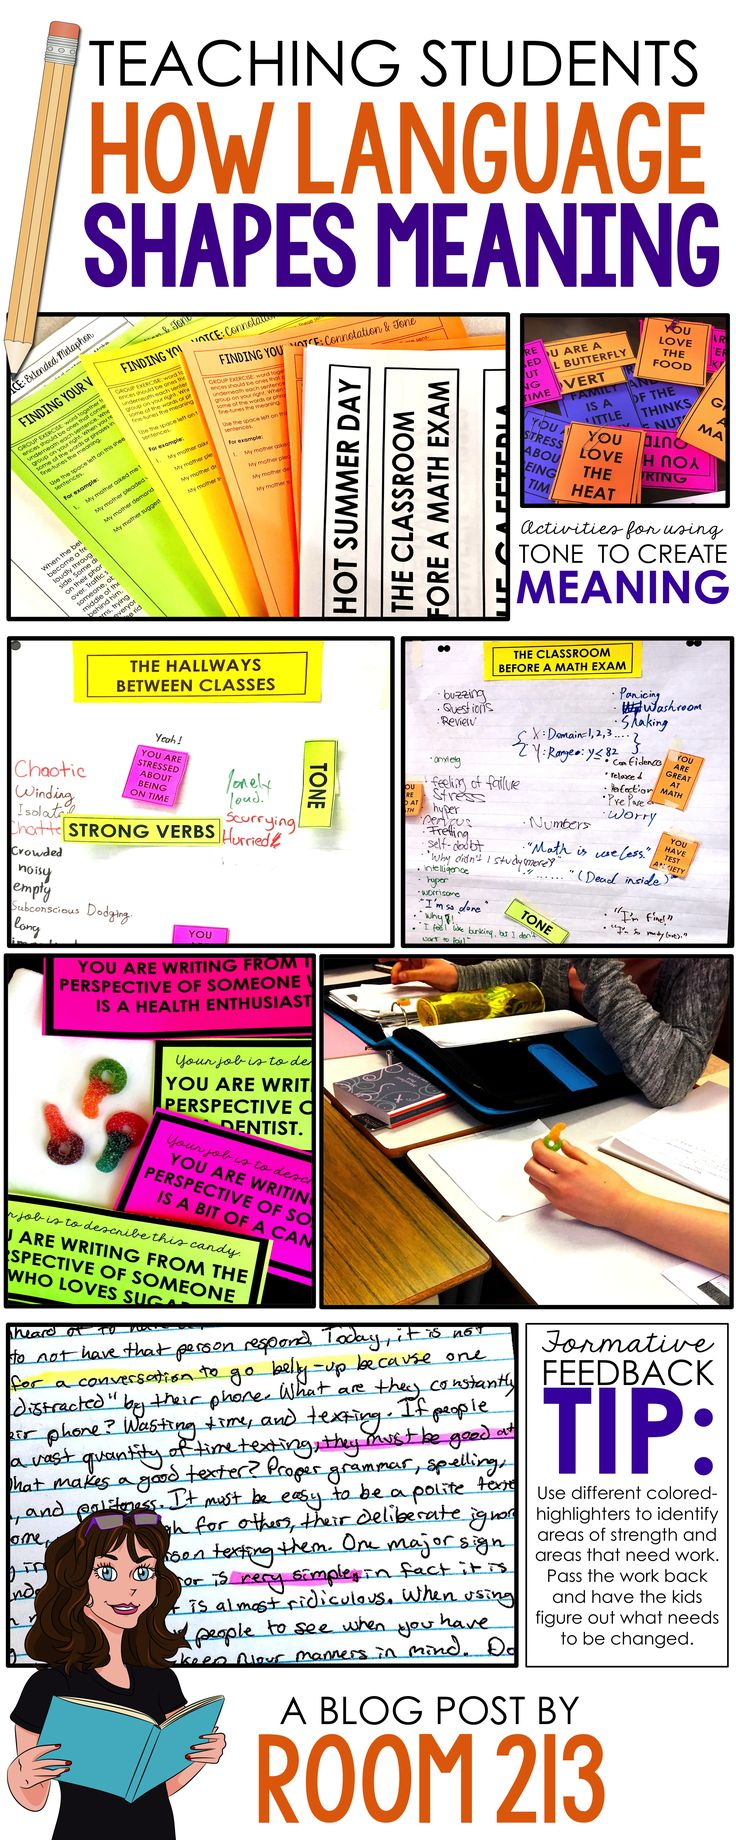 Check out this blog post to get ideas for writing lessons and activities on word choice, connotation, tone, sensory imagery and figurative language,